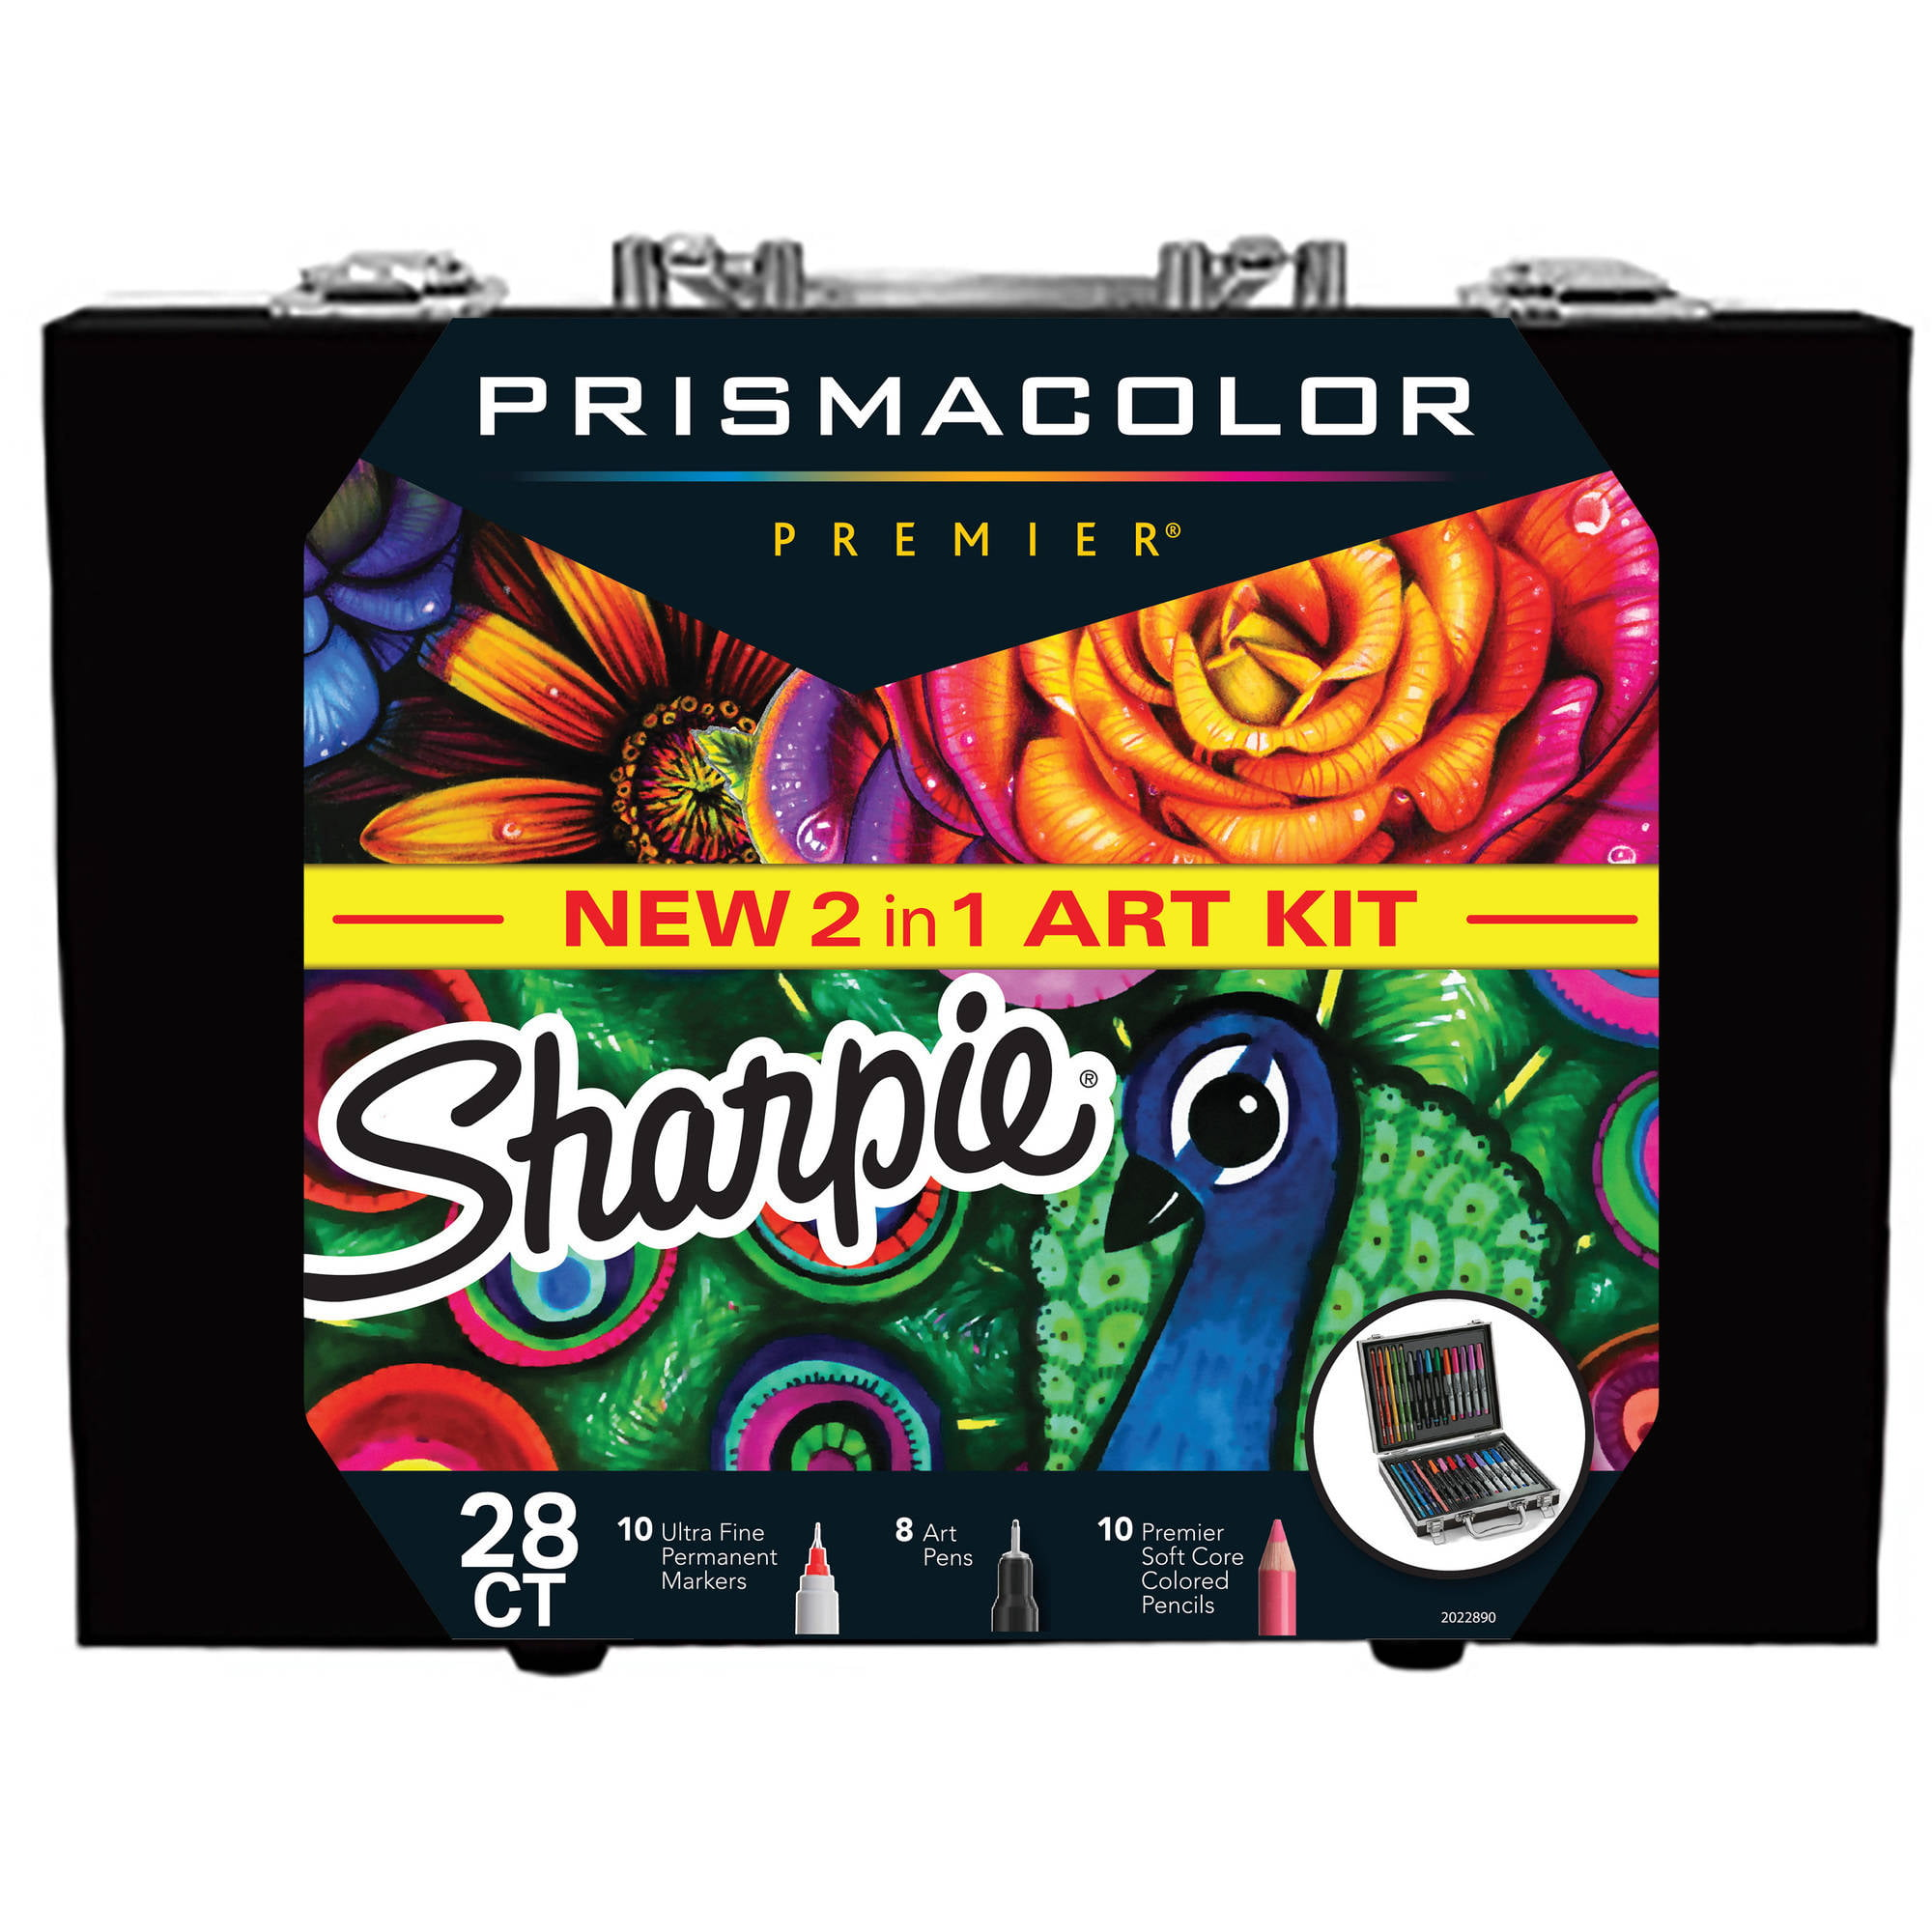 Sharpie and Prismacolor Coloring Kit with Permanent Markers, Art ...